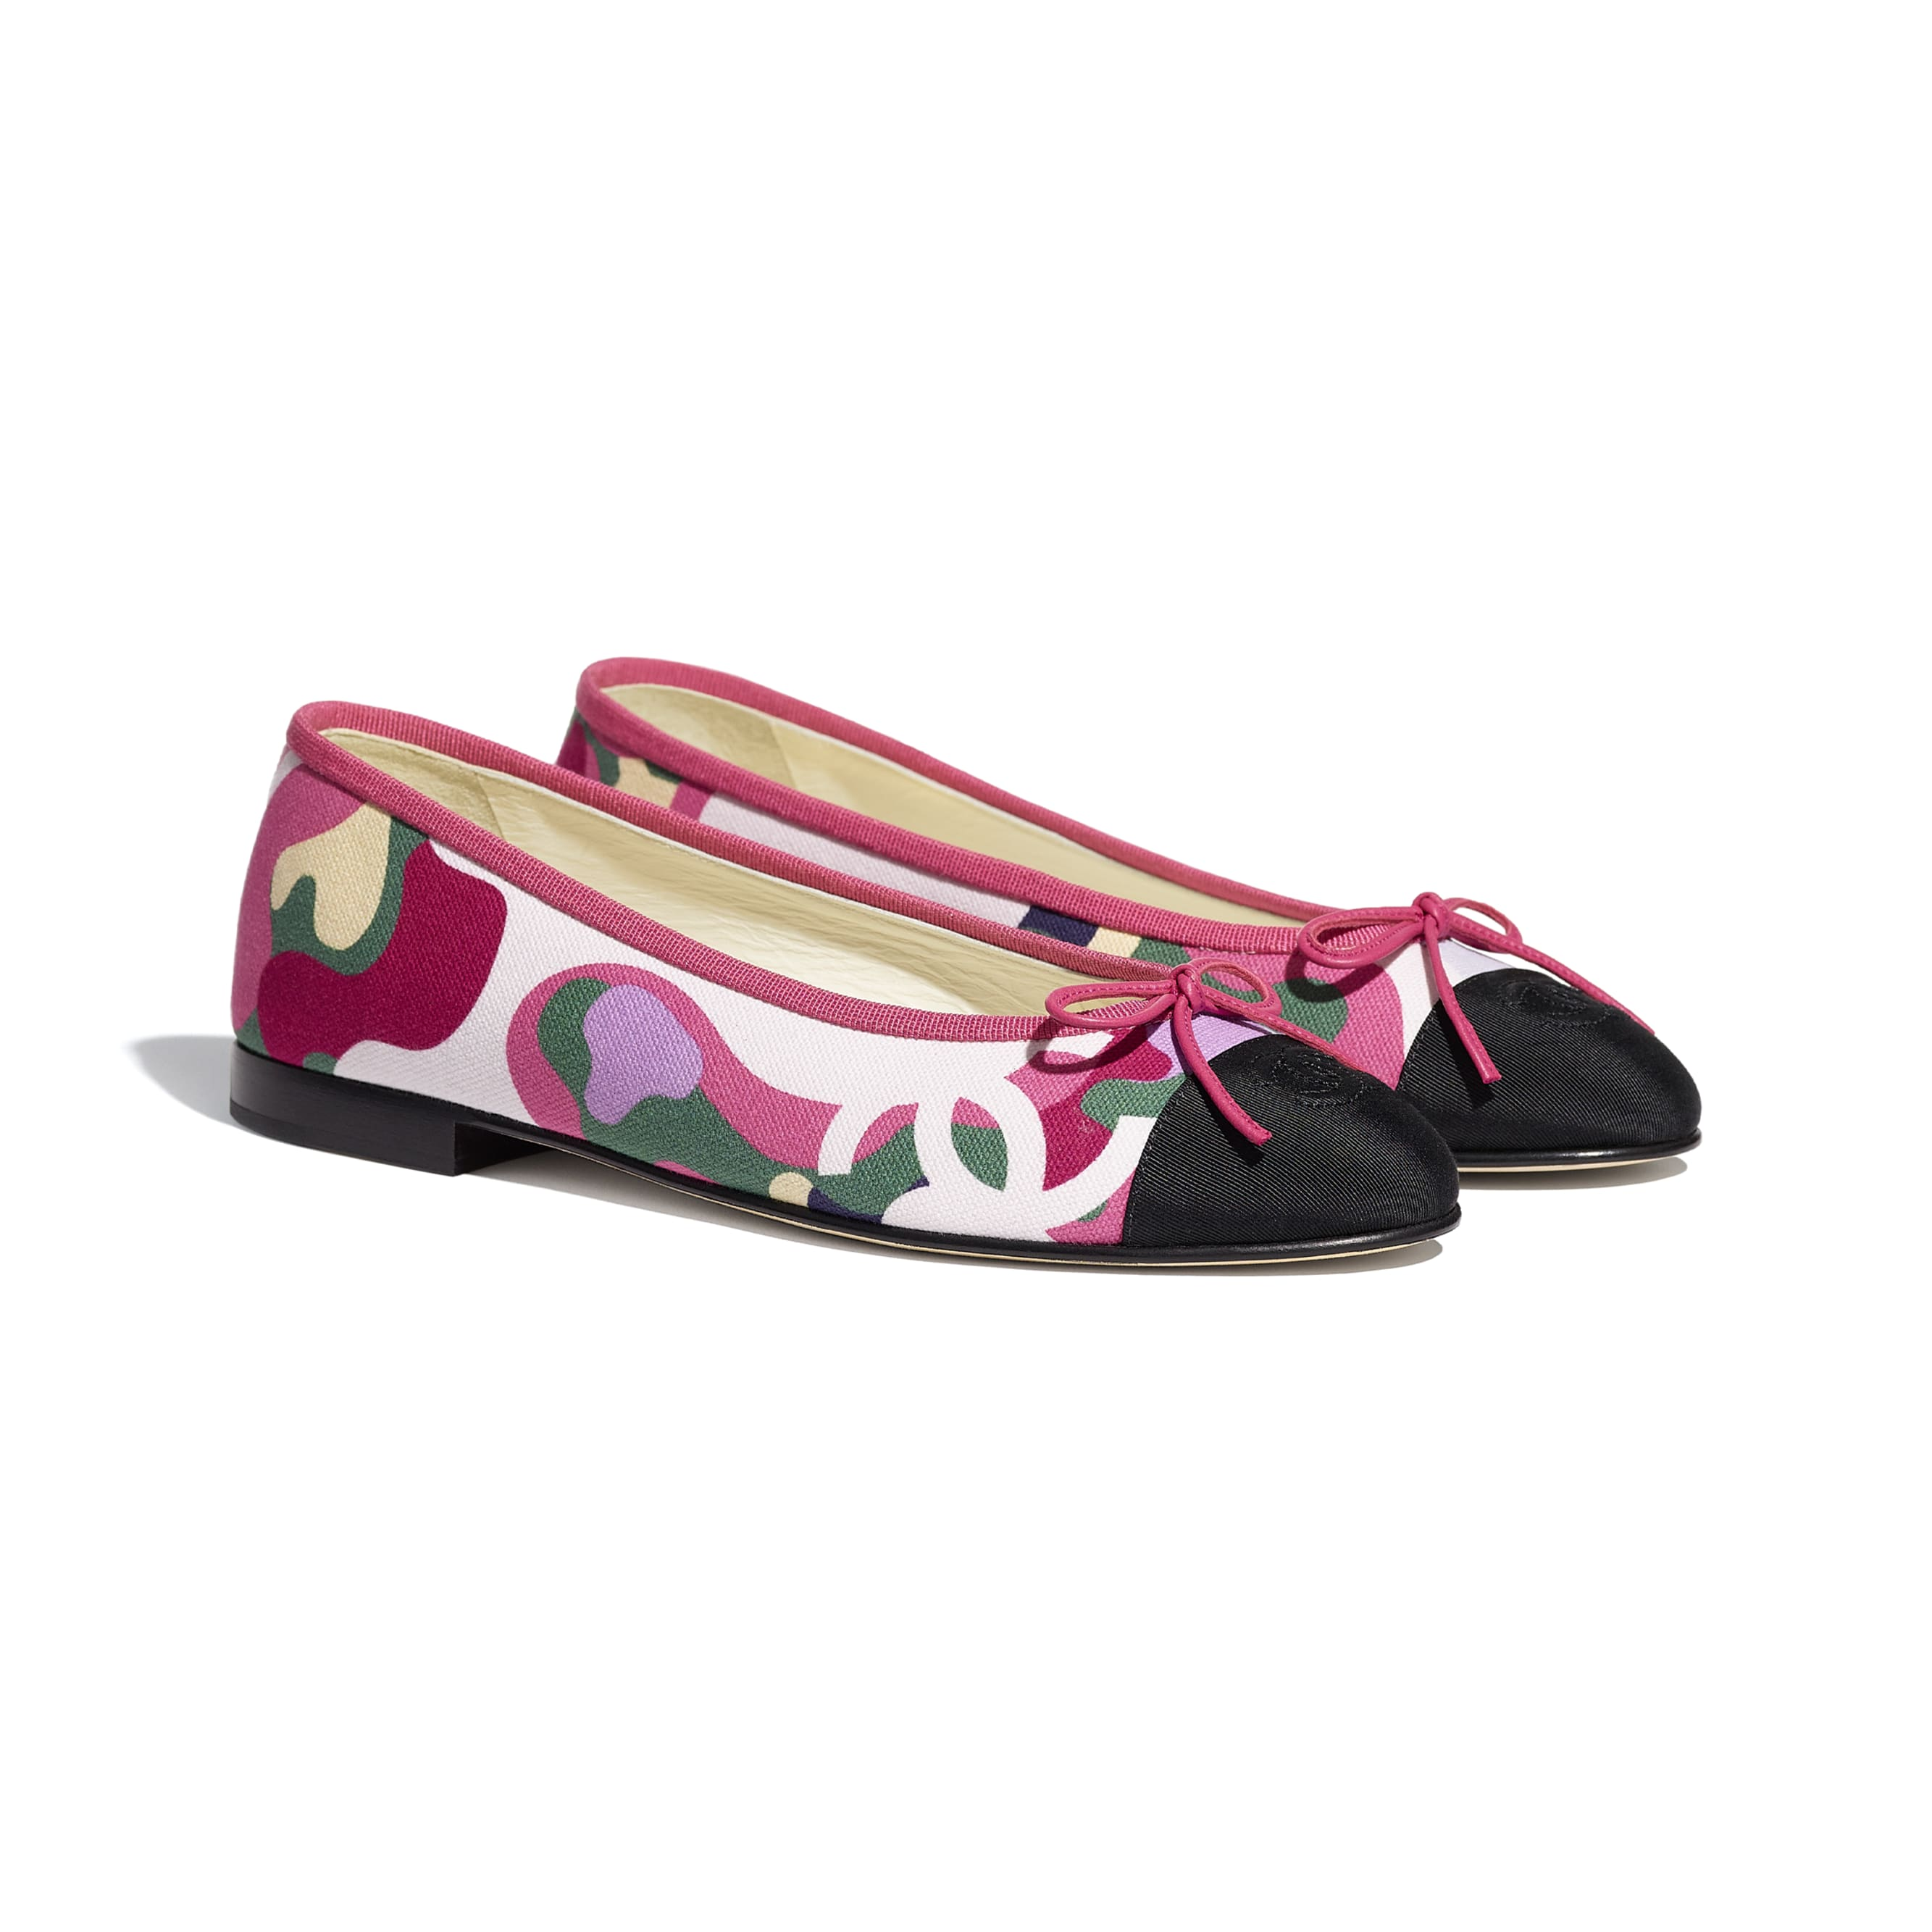 Flats - Pink, Green & Black - Cotton & Grosgrain - CHANEL - Alternative view - see standard sized version